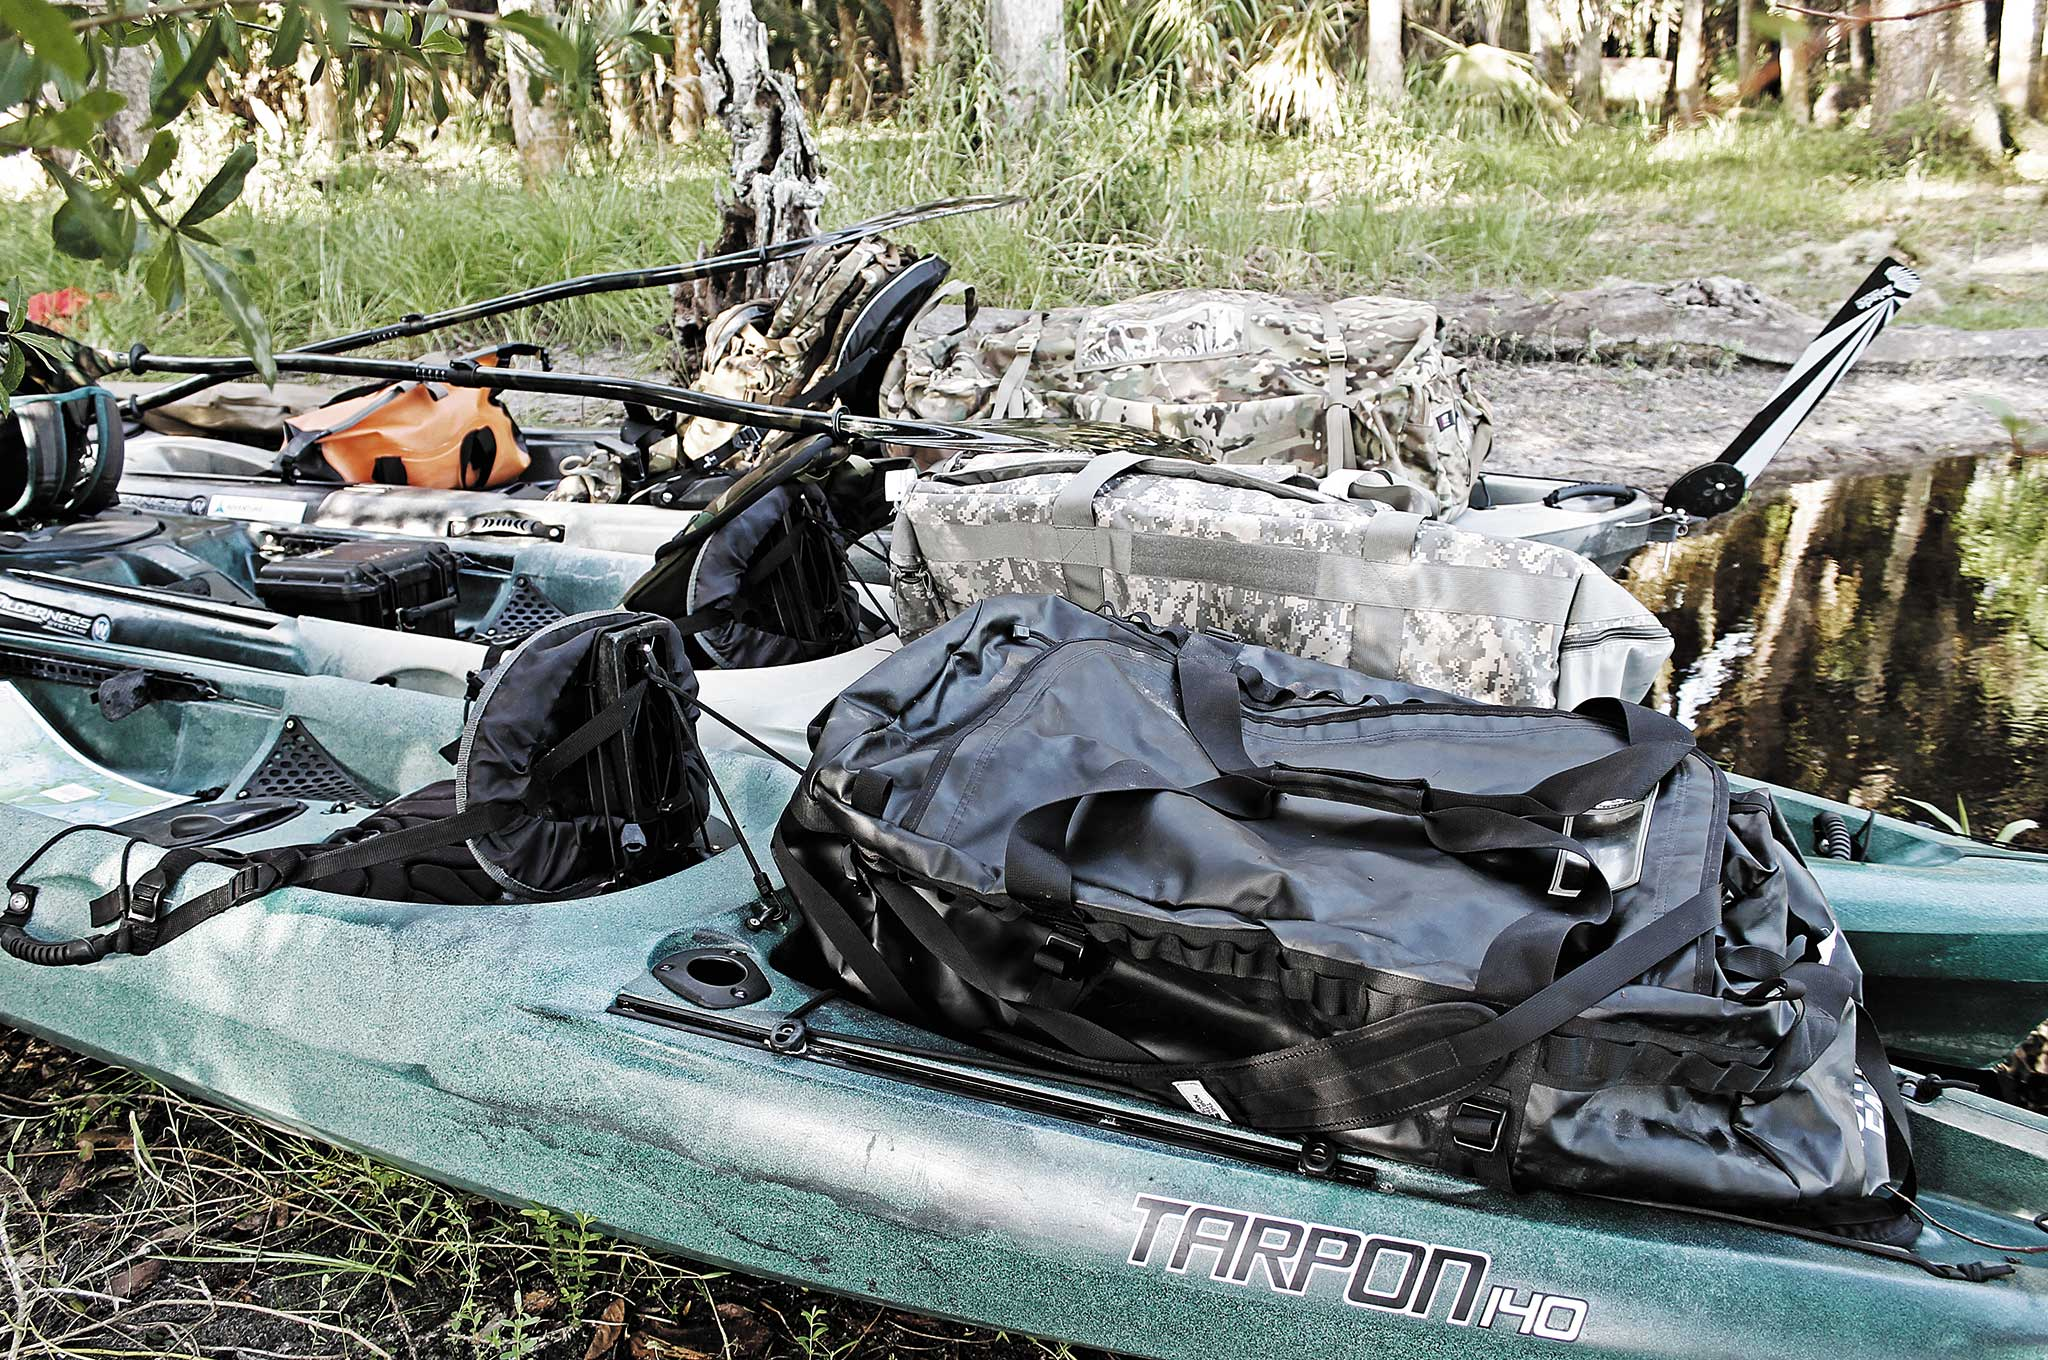 You can fit a surprising amount of gear on a kayak.